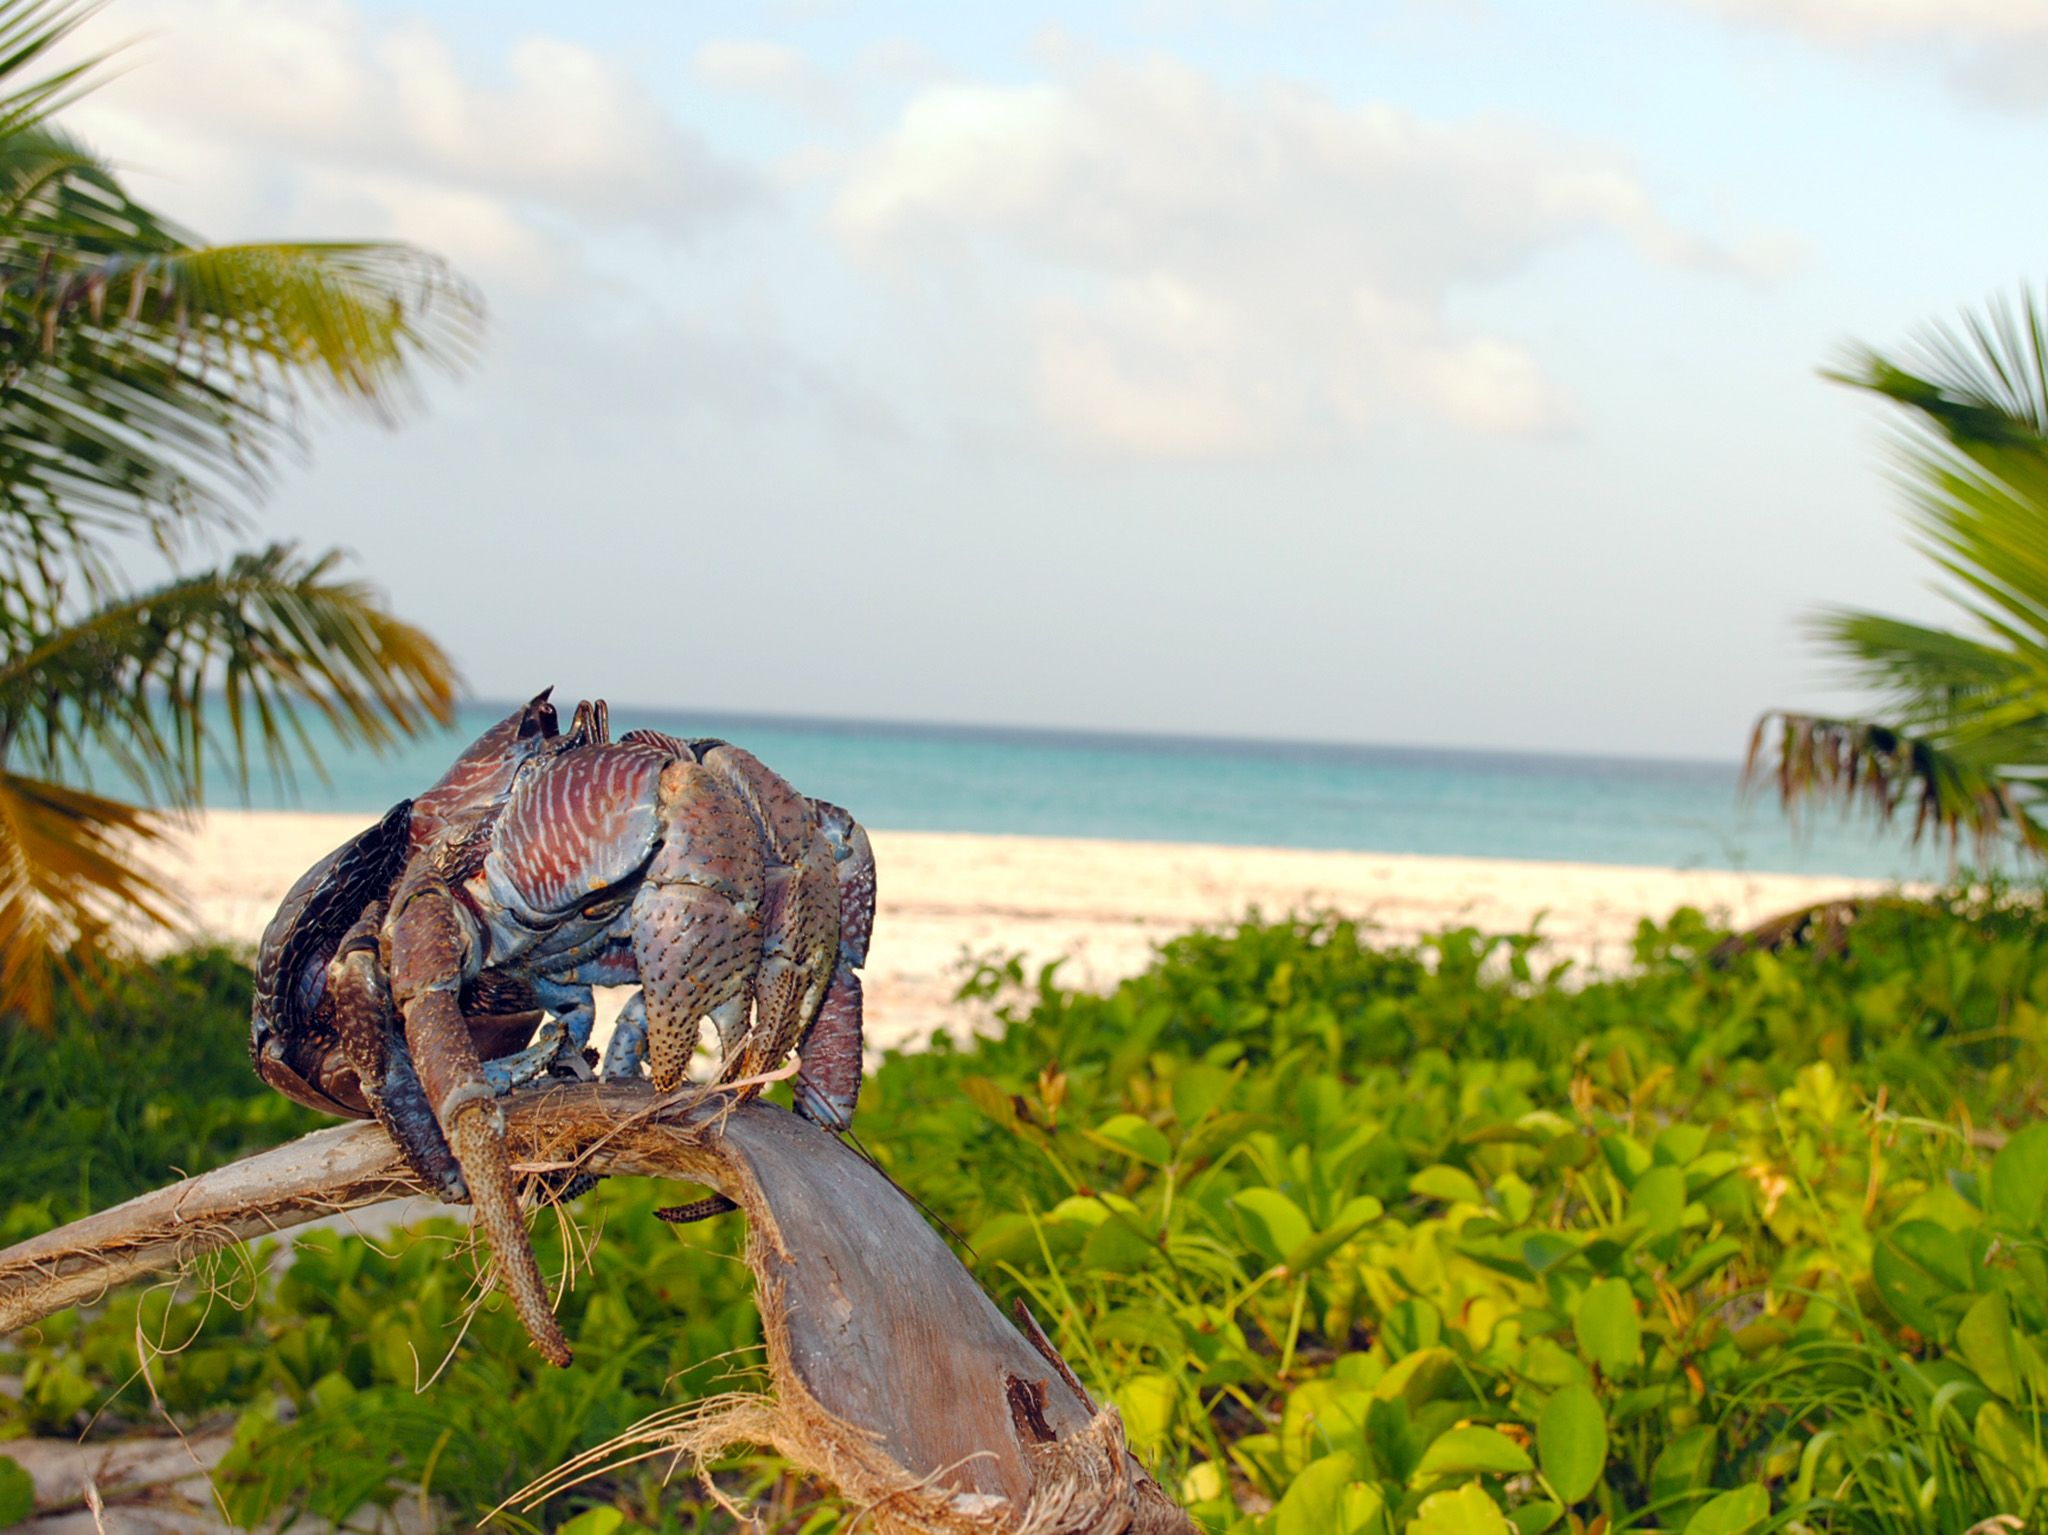 Fanjove Island, Tanzania:  A coconut crab on a palm branch.  This image is from Jane Goodall:... [Photo of the day - آوریل 2018]